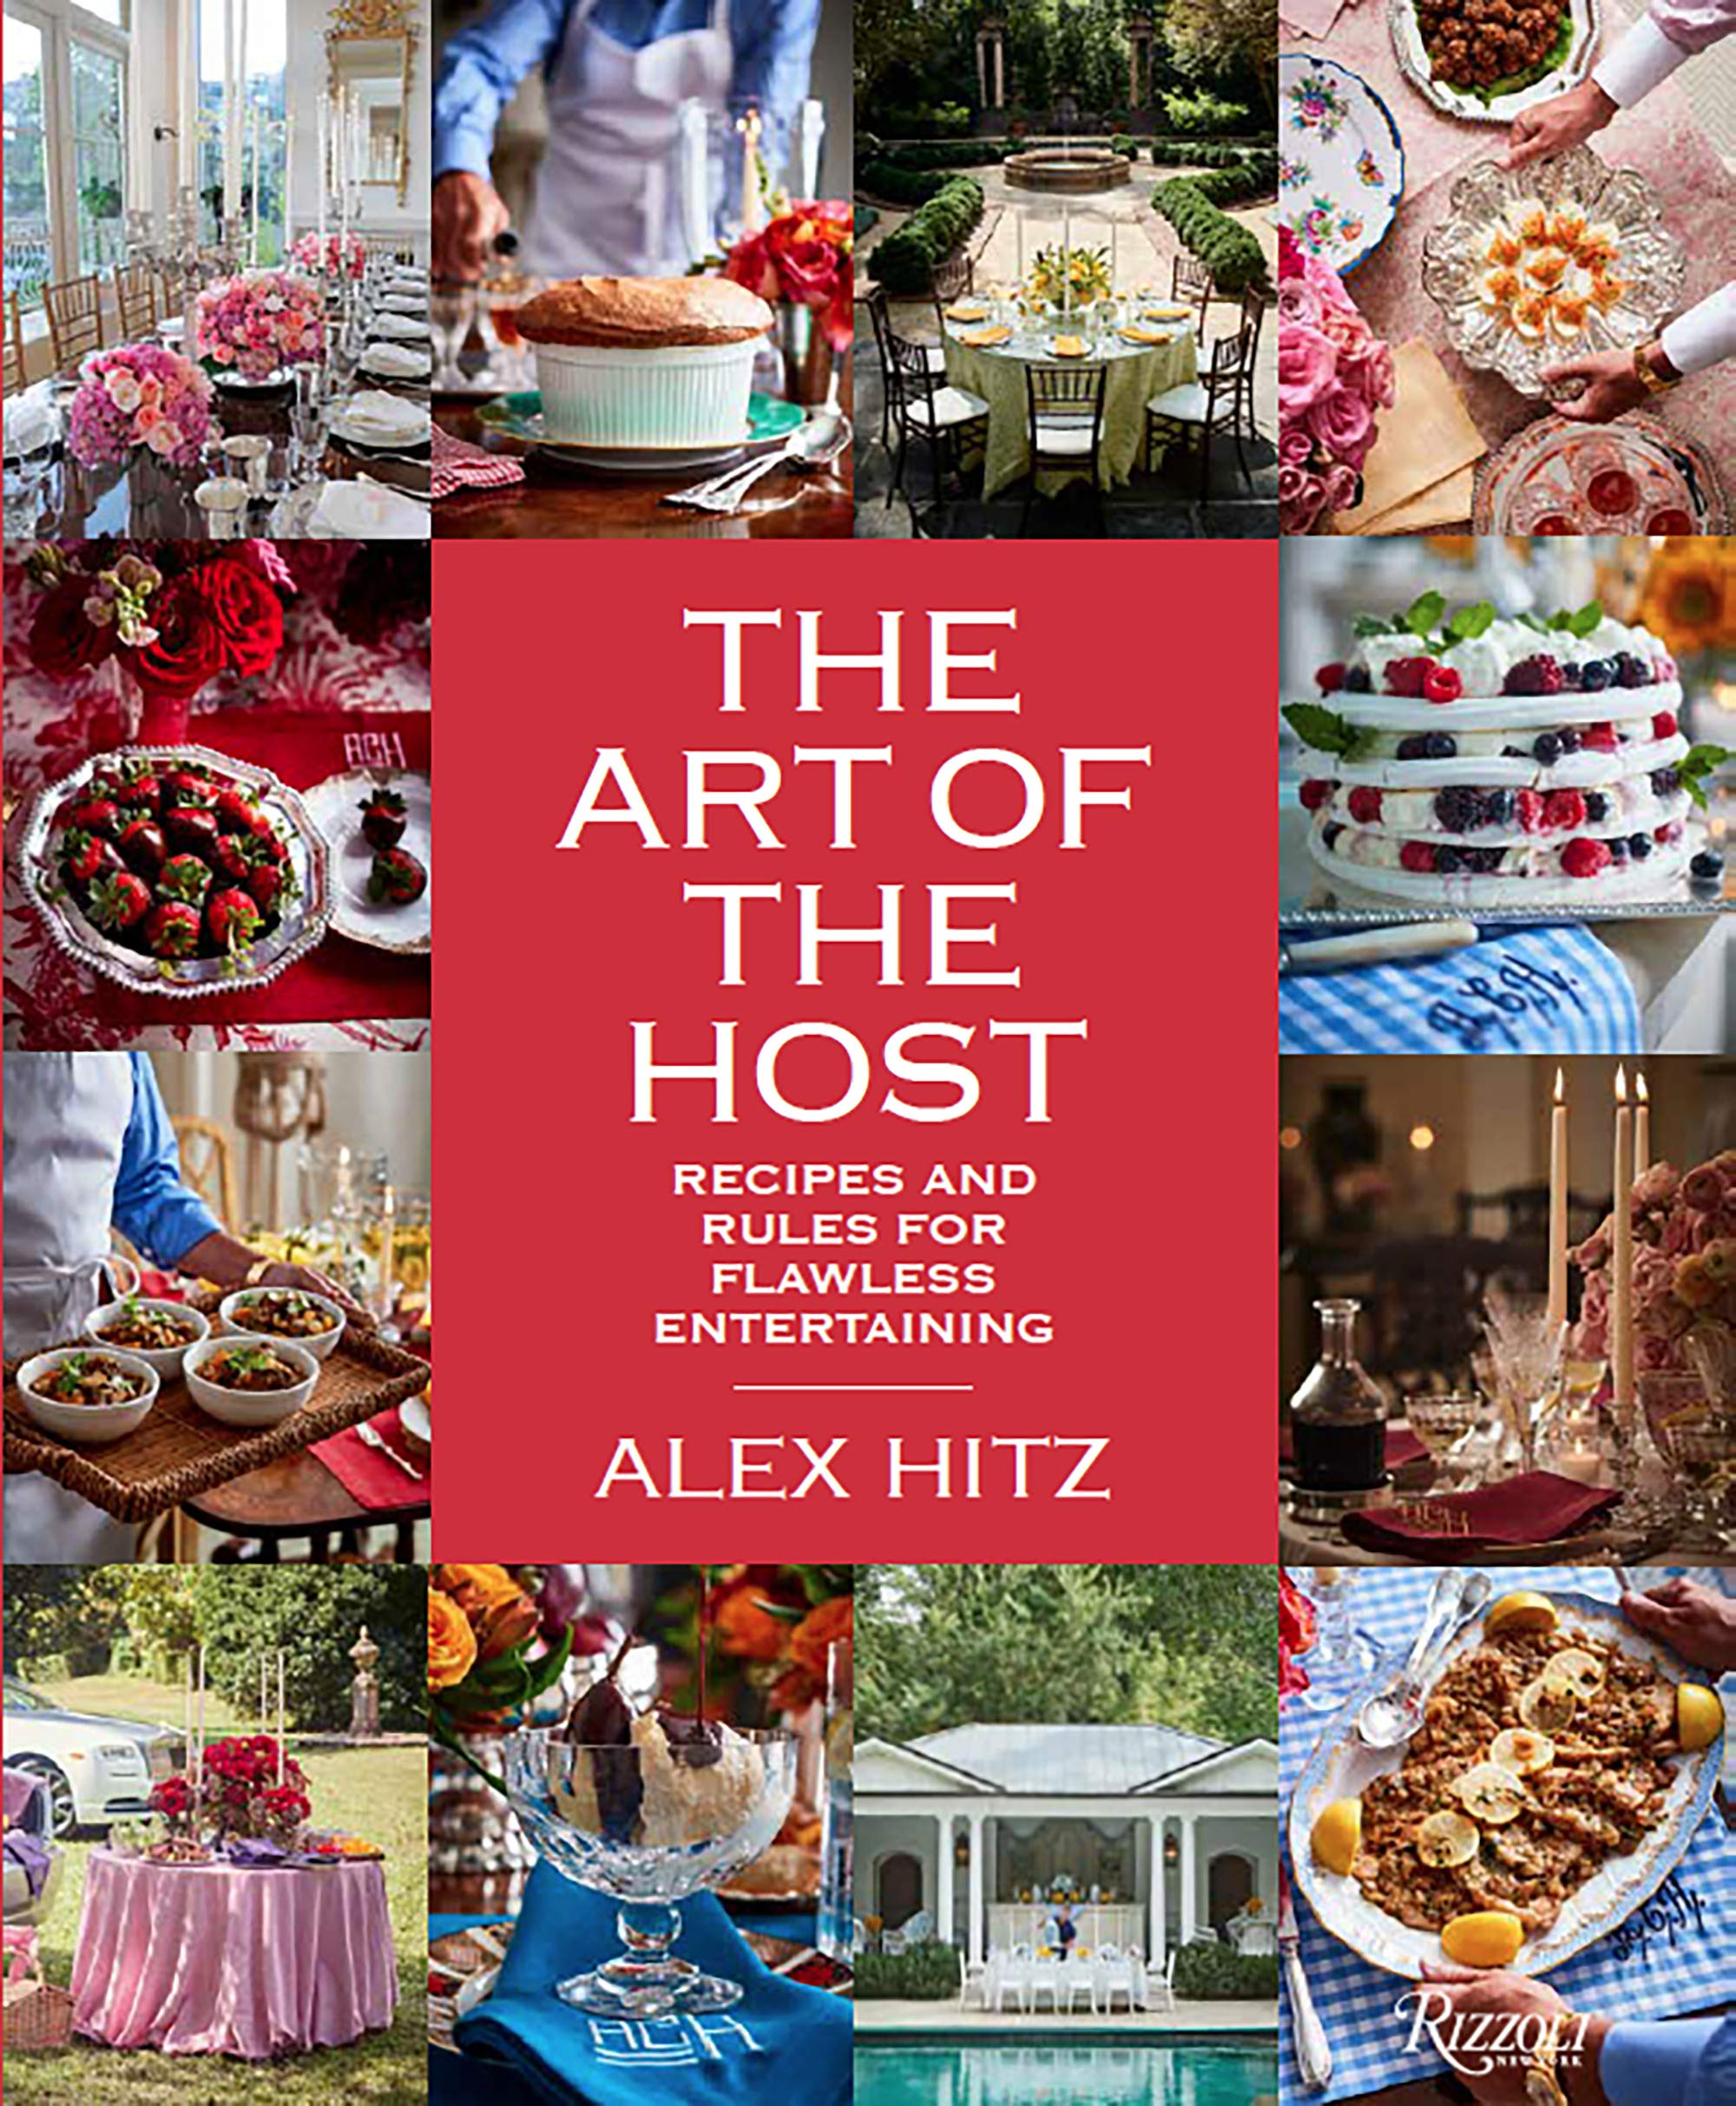 The Art of the Host: Recipes And Rules For Flawless Entertaining by Rizzoli